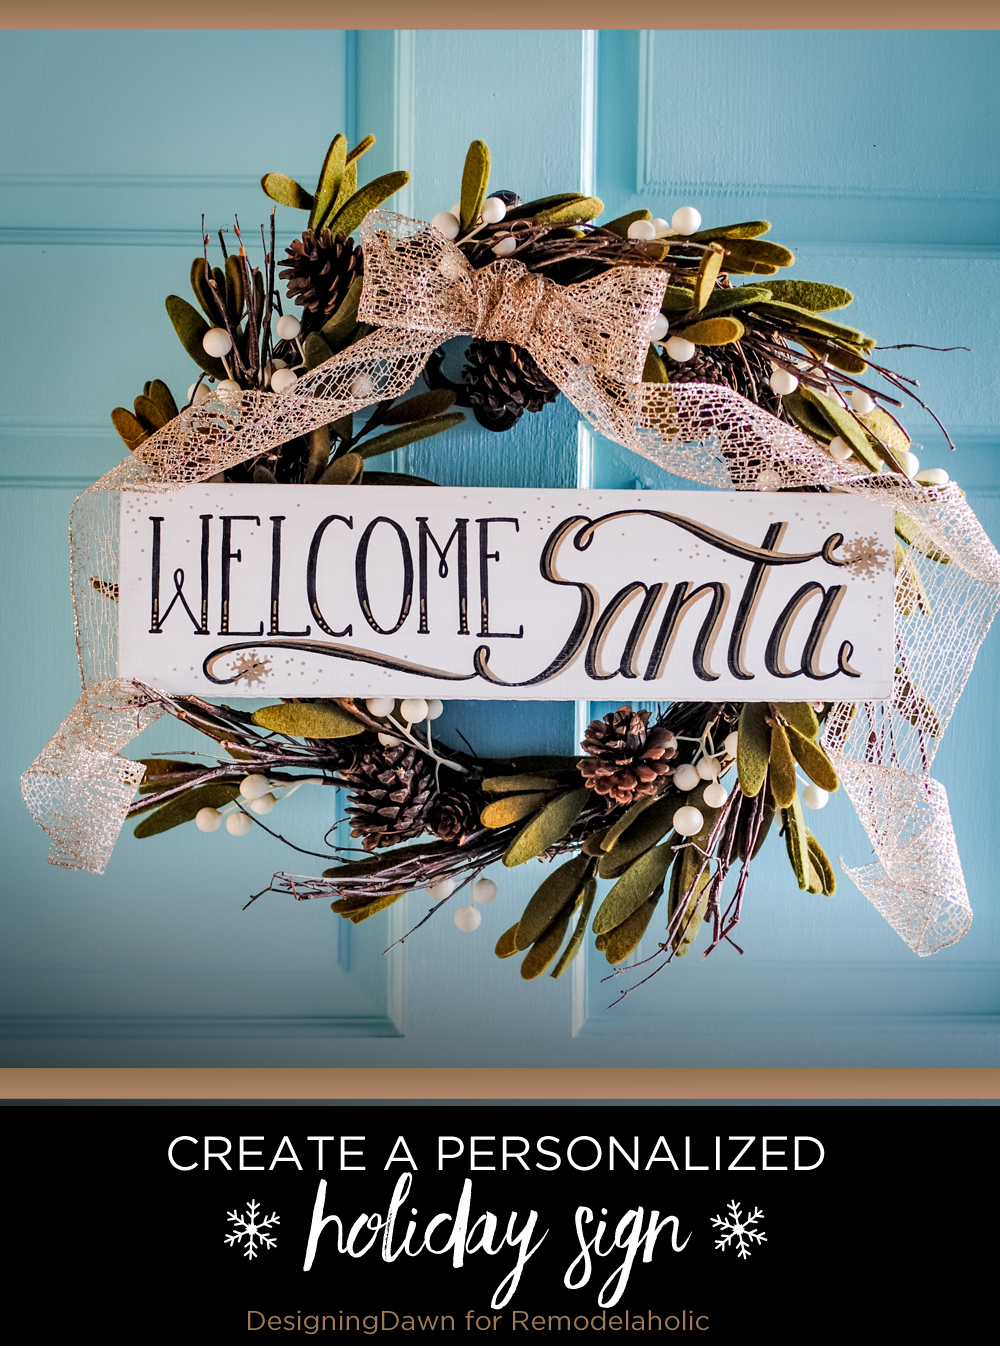 Welcome Santa or other holiday guests with a cheery hand-painted holiday sign. This tutorial shows you how to make it beautiful even if you're not an artist.